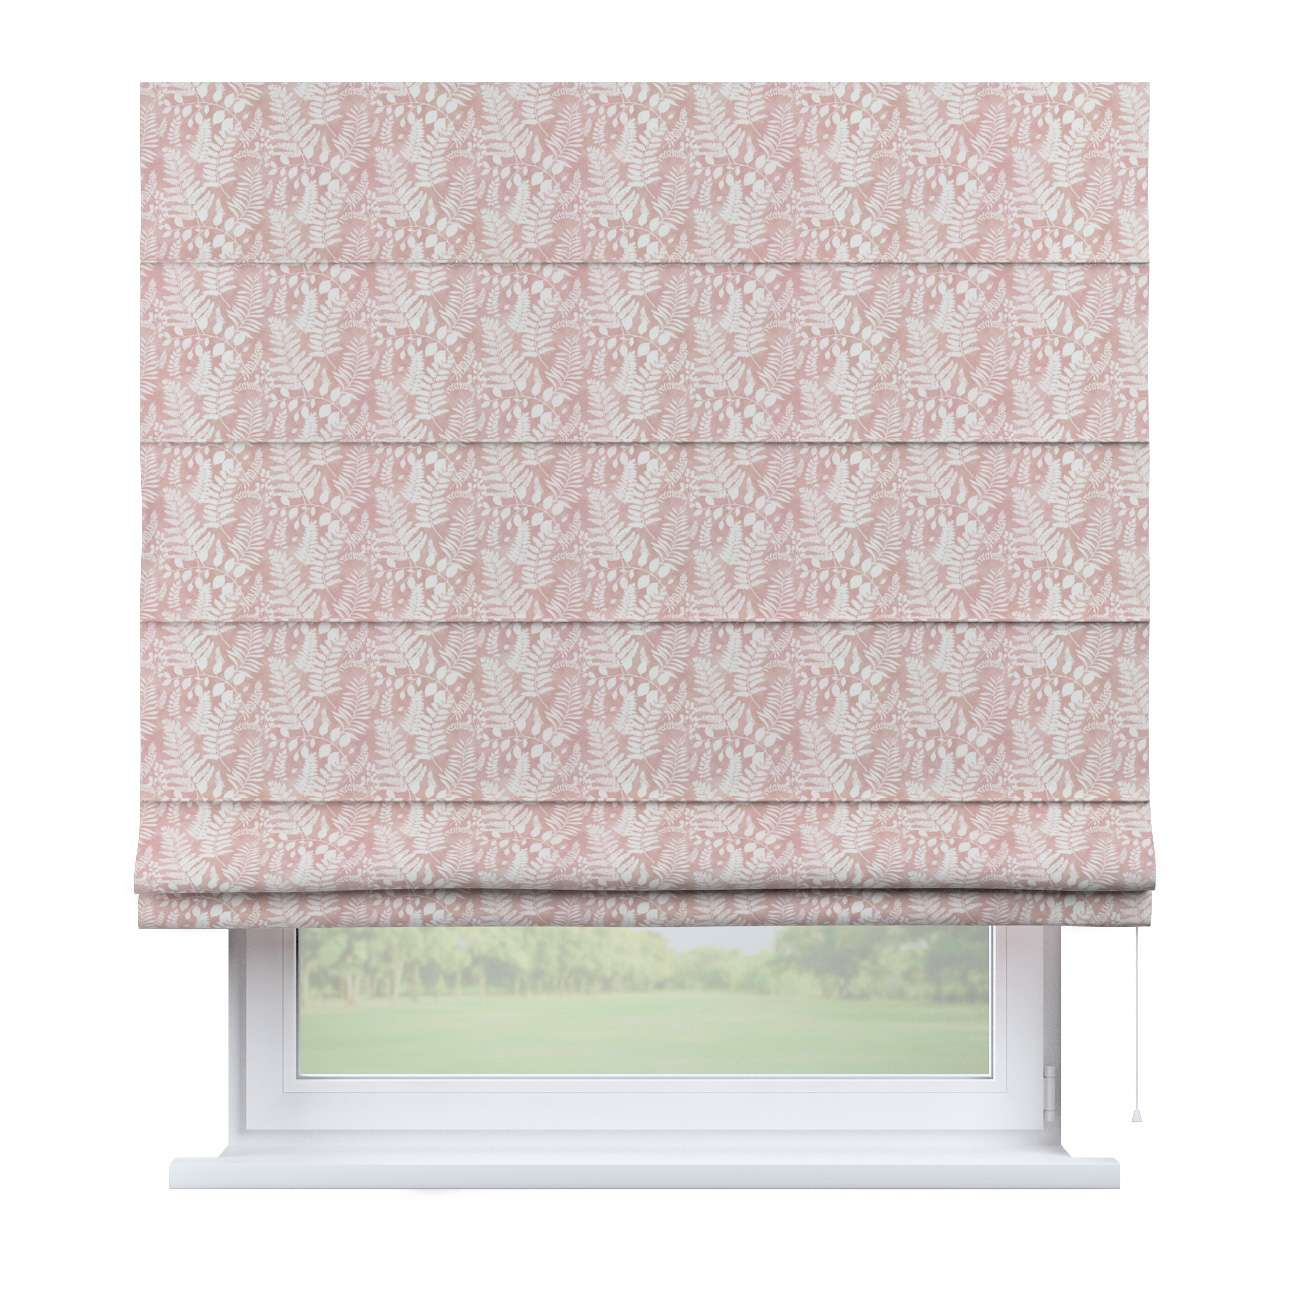 Capri roman blind in collection Pastel Forest, fabric: 142-48